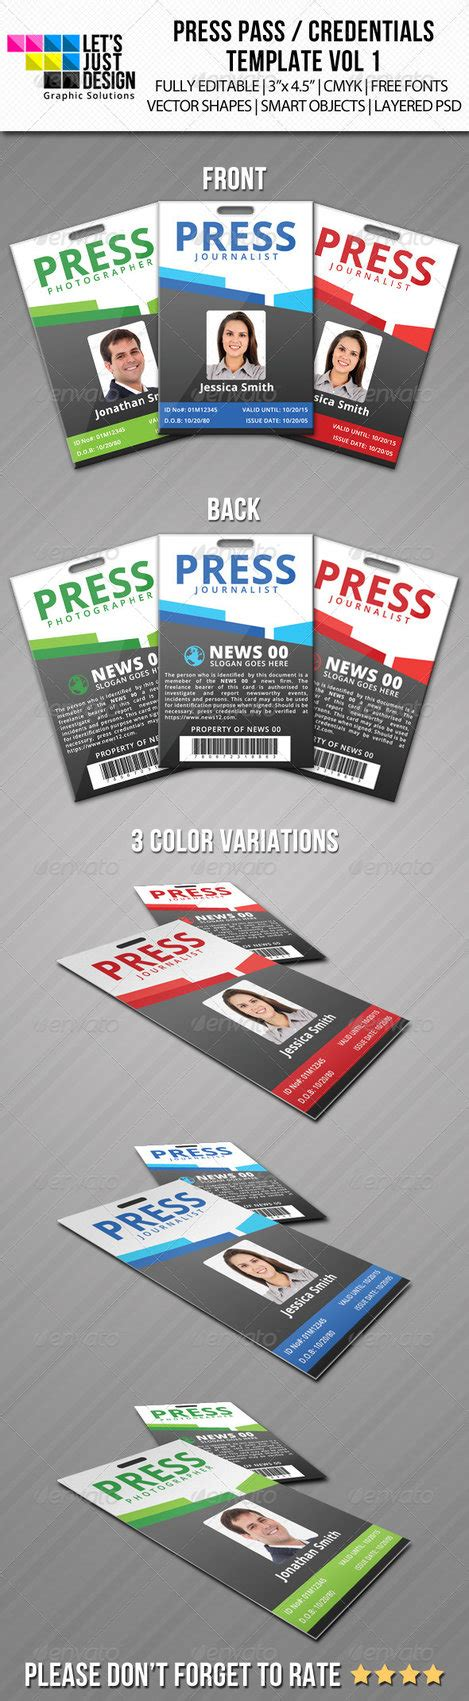 Press Pass Credentials Template Vol 1 By Jasonmendes On Deviantart Media Pass Template Photoshop